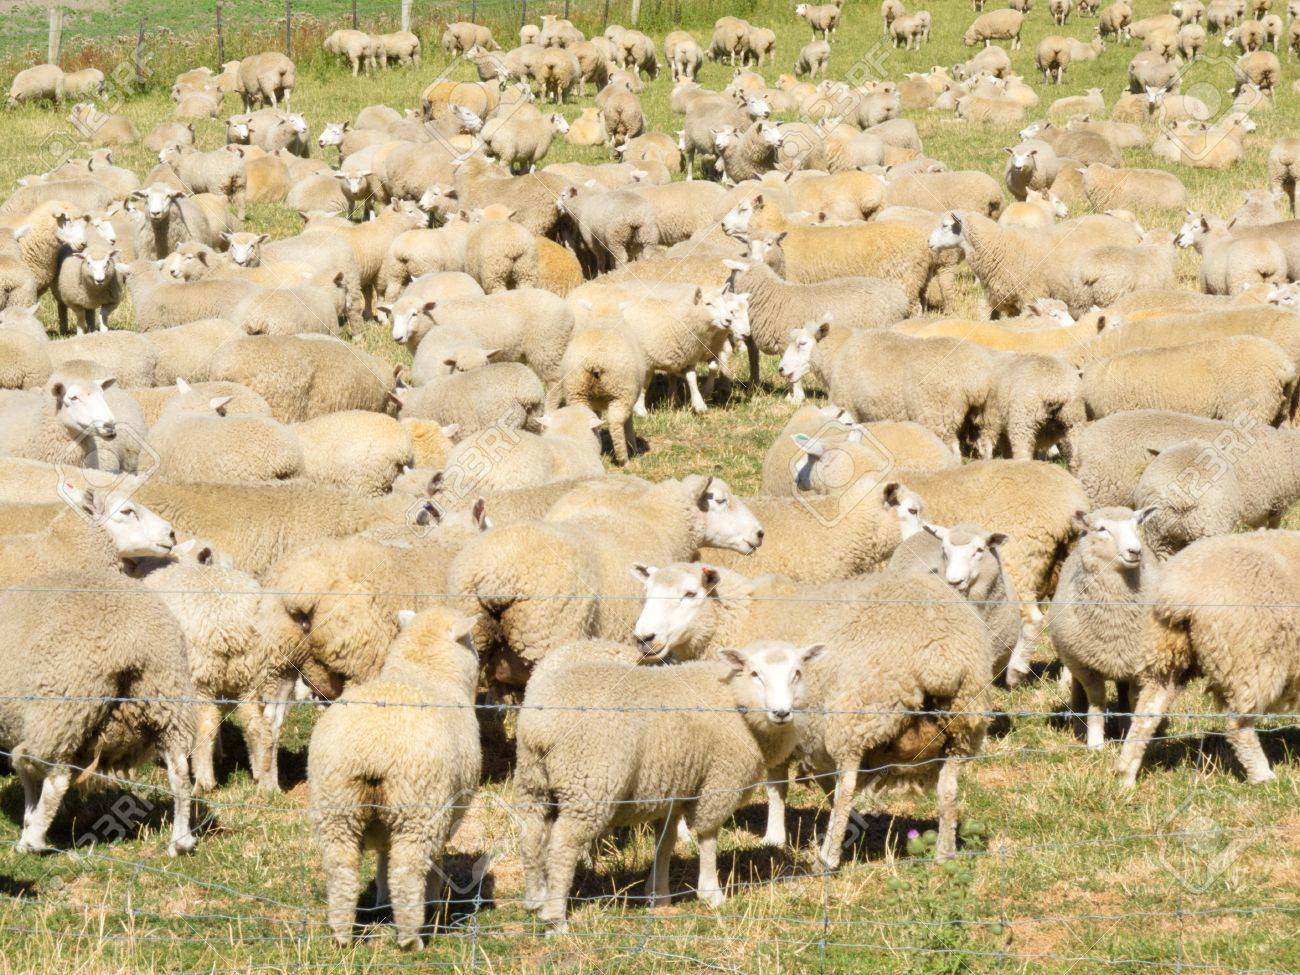 Flock of woolly sheep with heavy fleeces standing close together in a field Stock Photo - 14333940